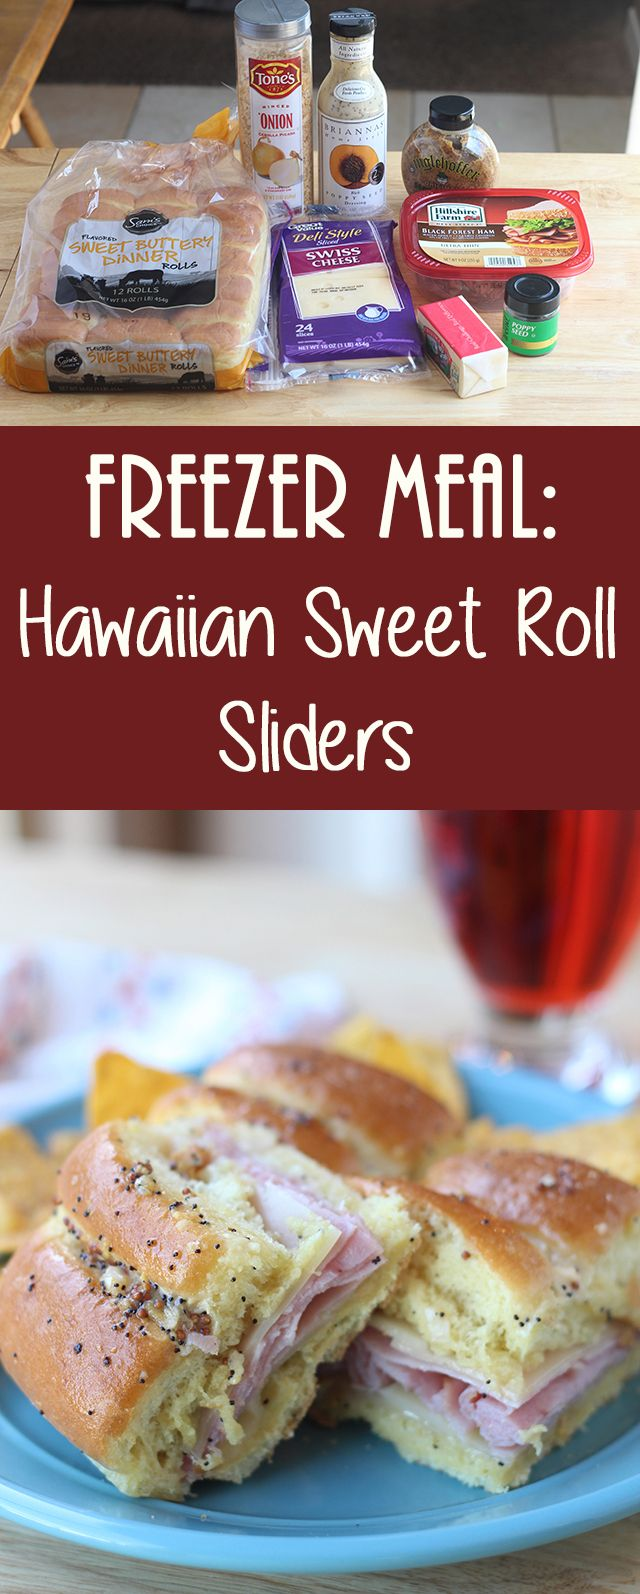 My offering for the blog today has quickly become one of my most favorite freezer meals ever!  These Hawaiian sweet roll sliders are s...